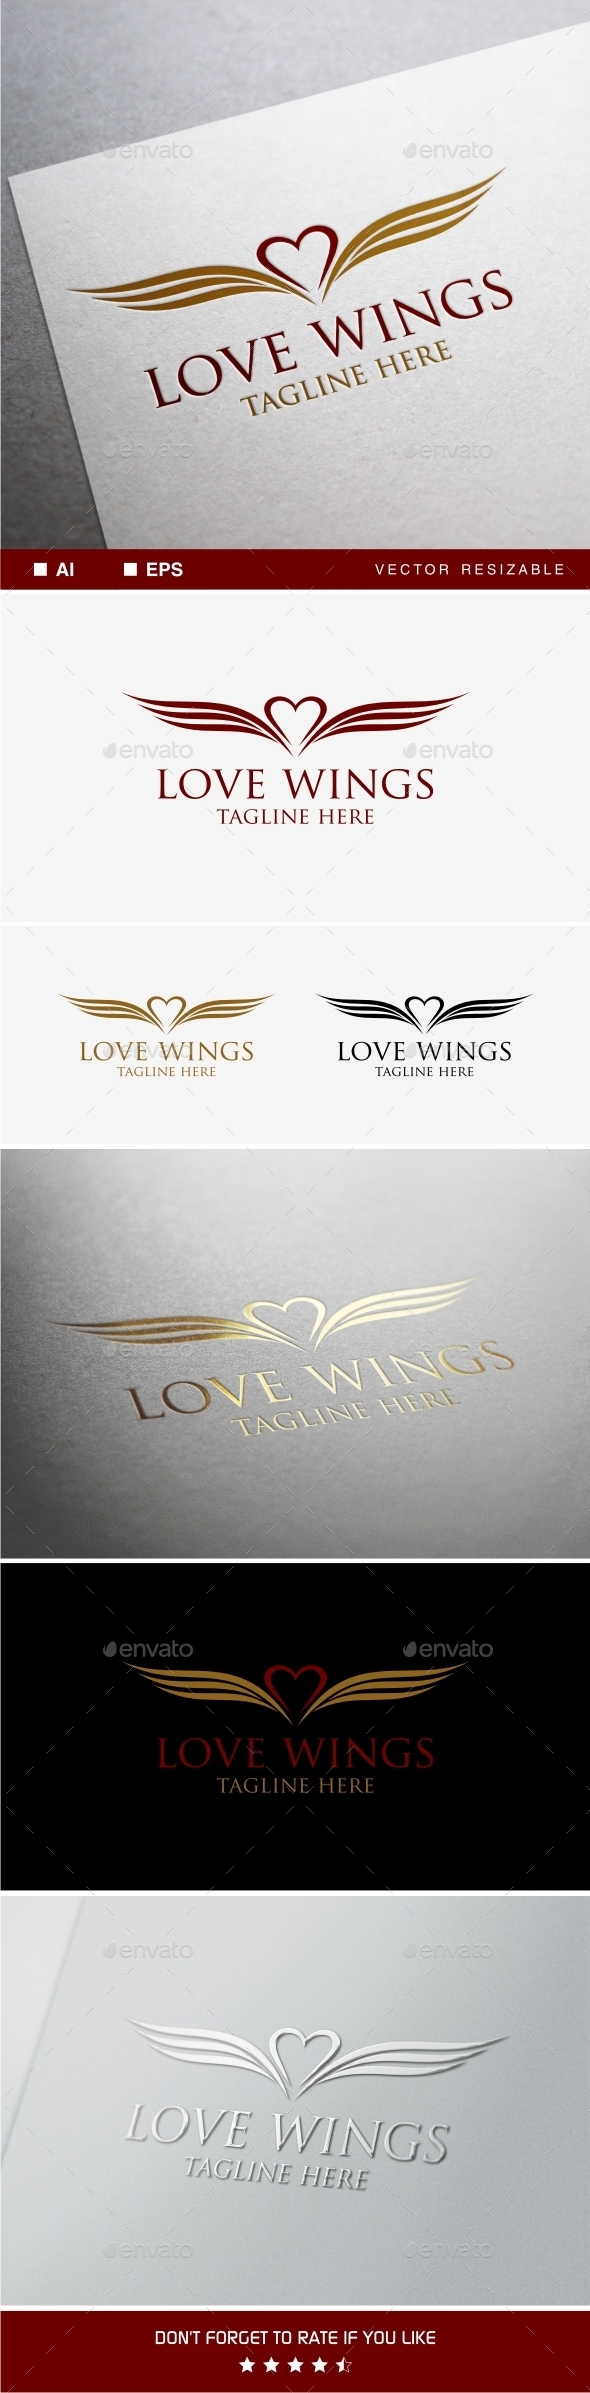 GraphicRiver Love Wings Logo Template 9935343